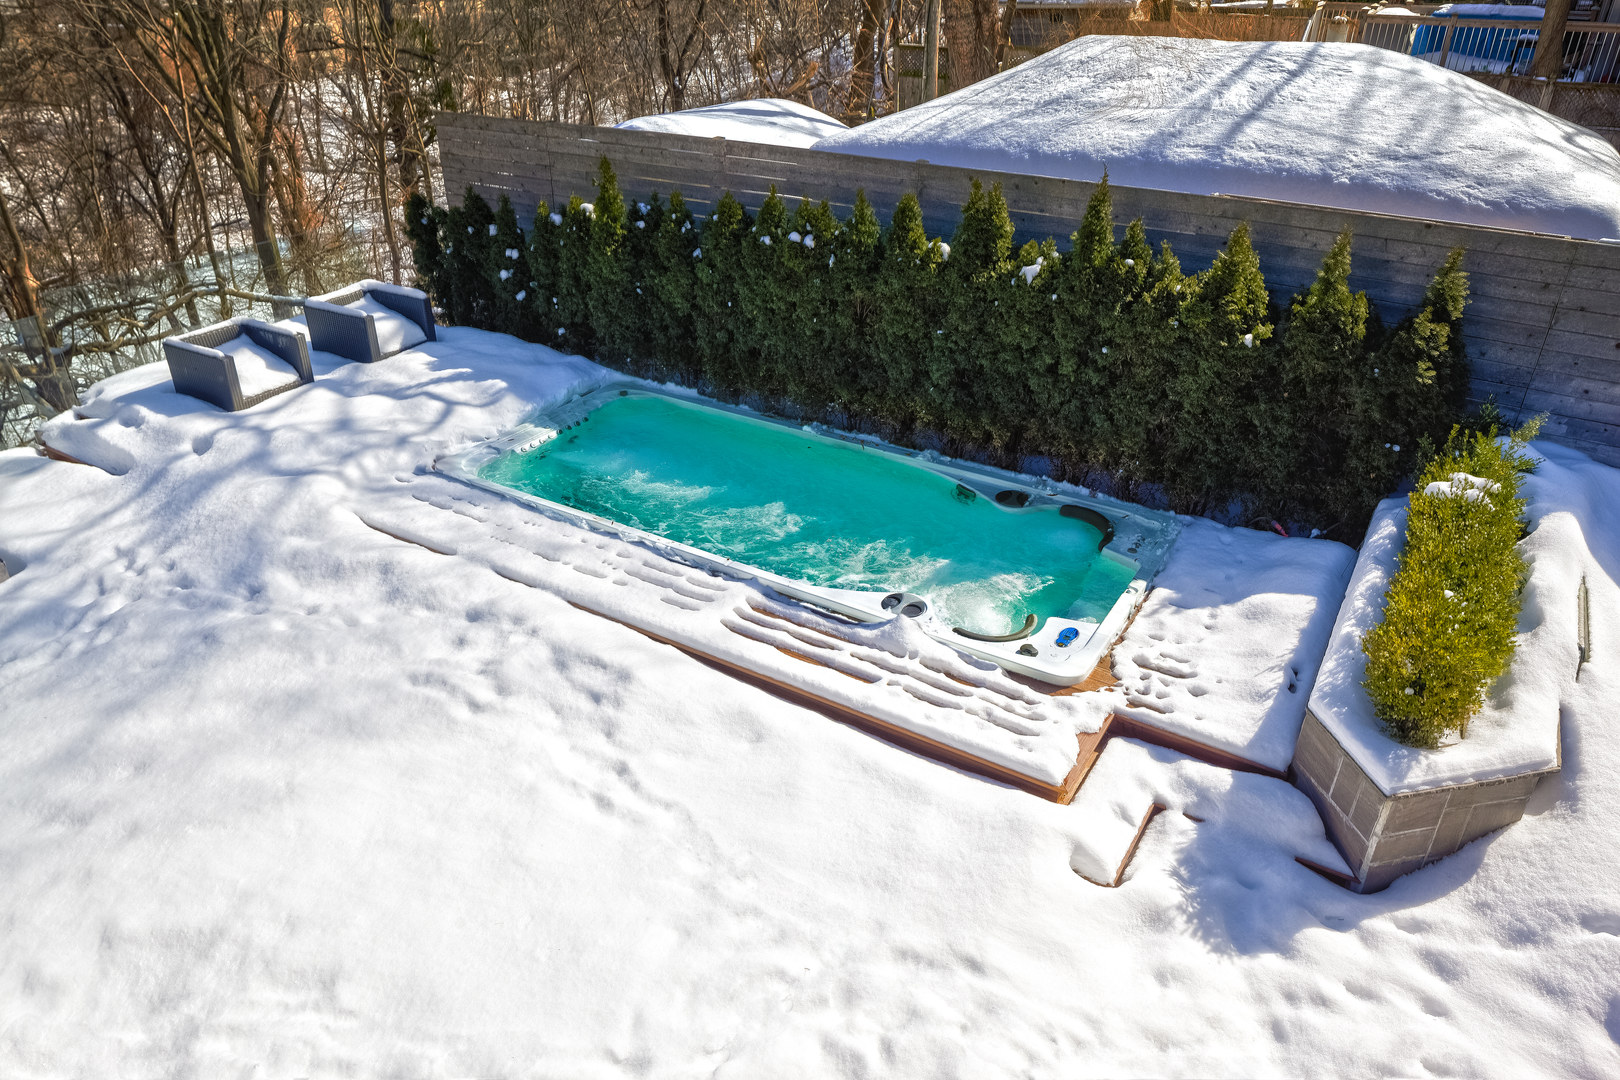 Swim Spa Winter no cover